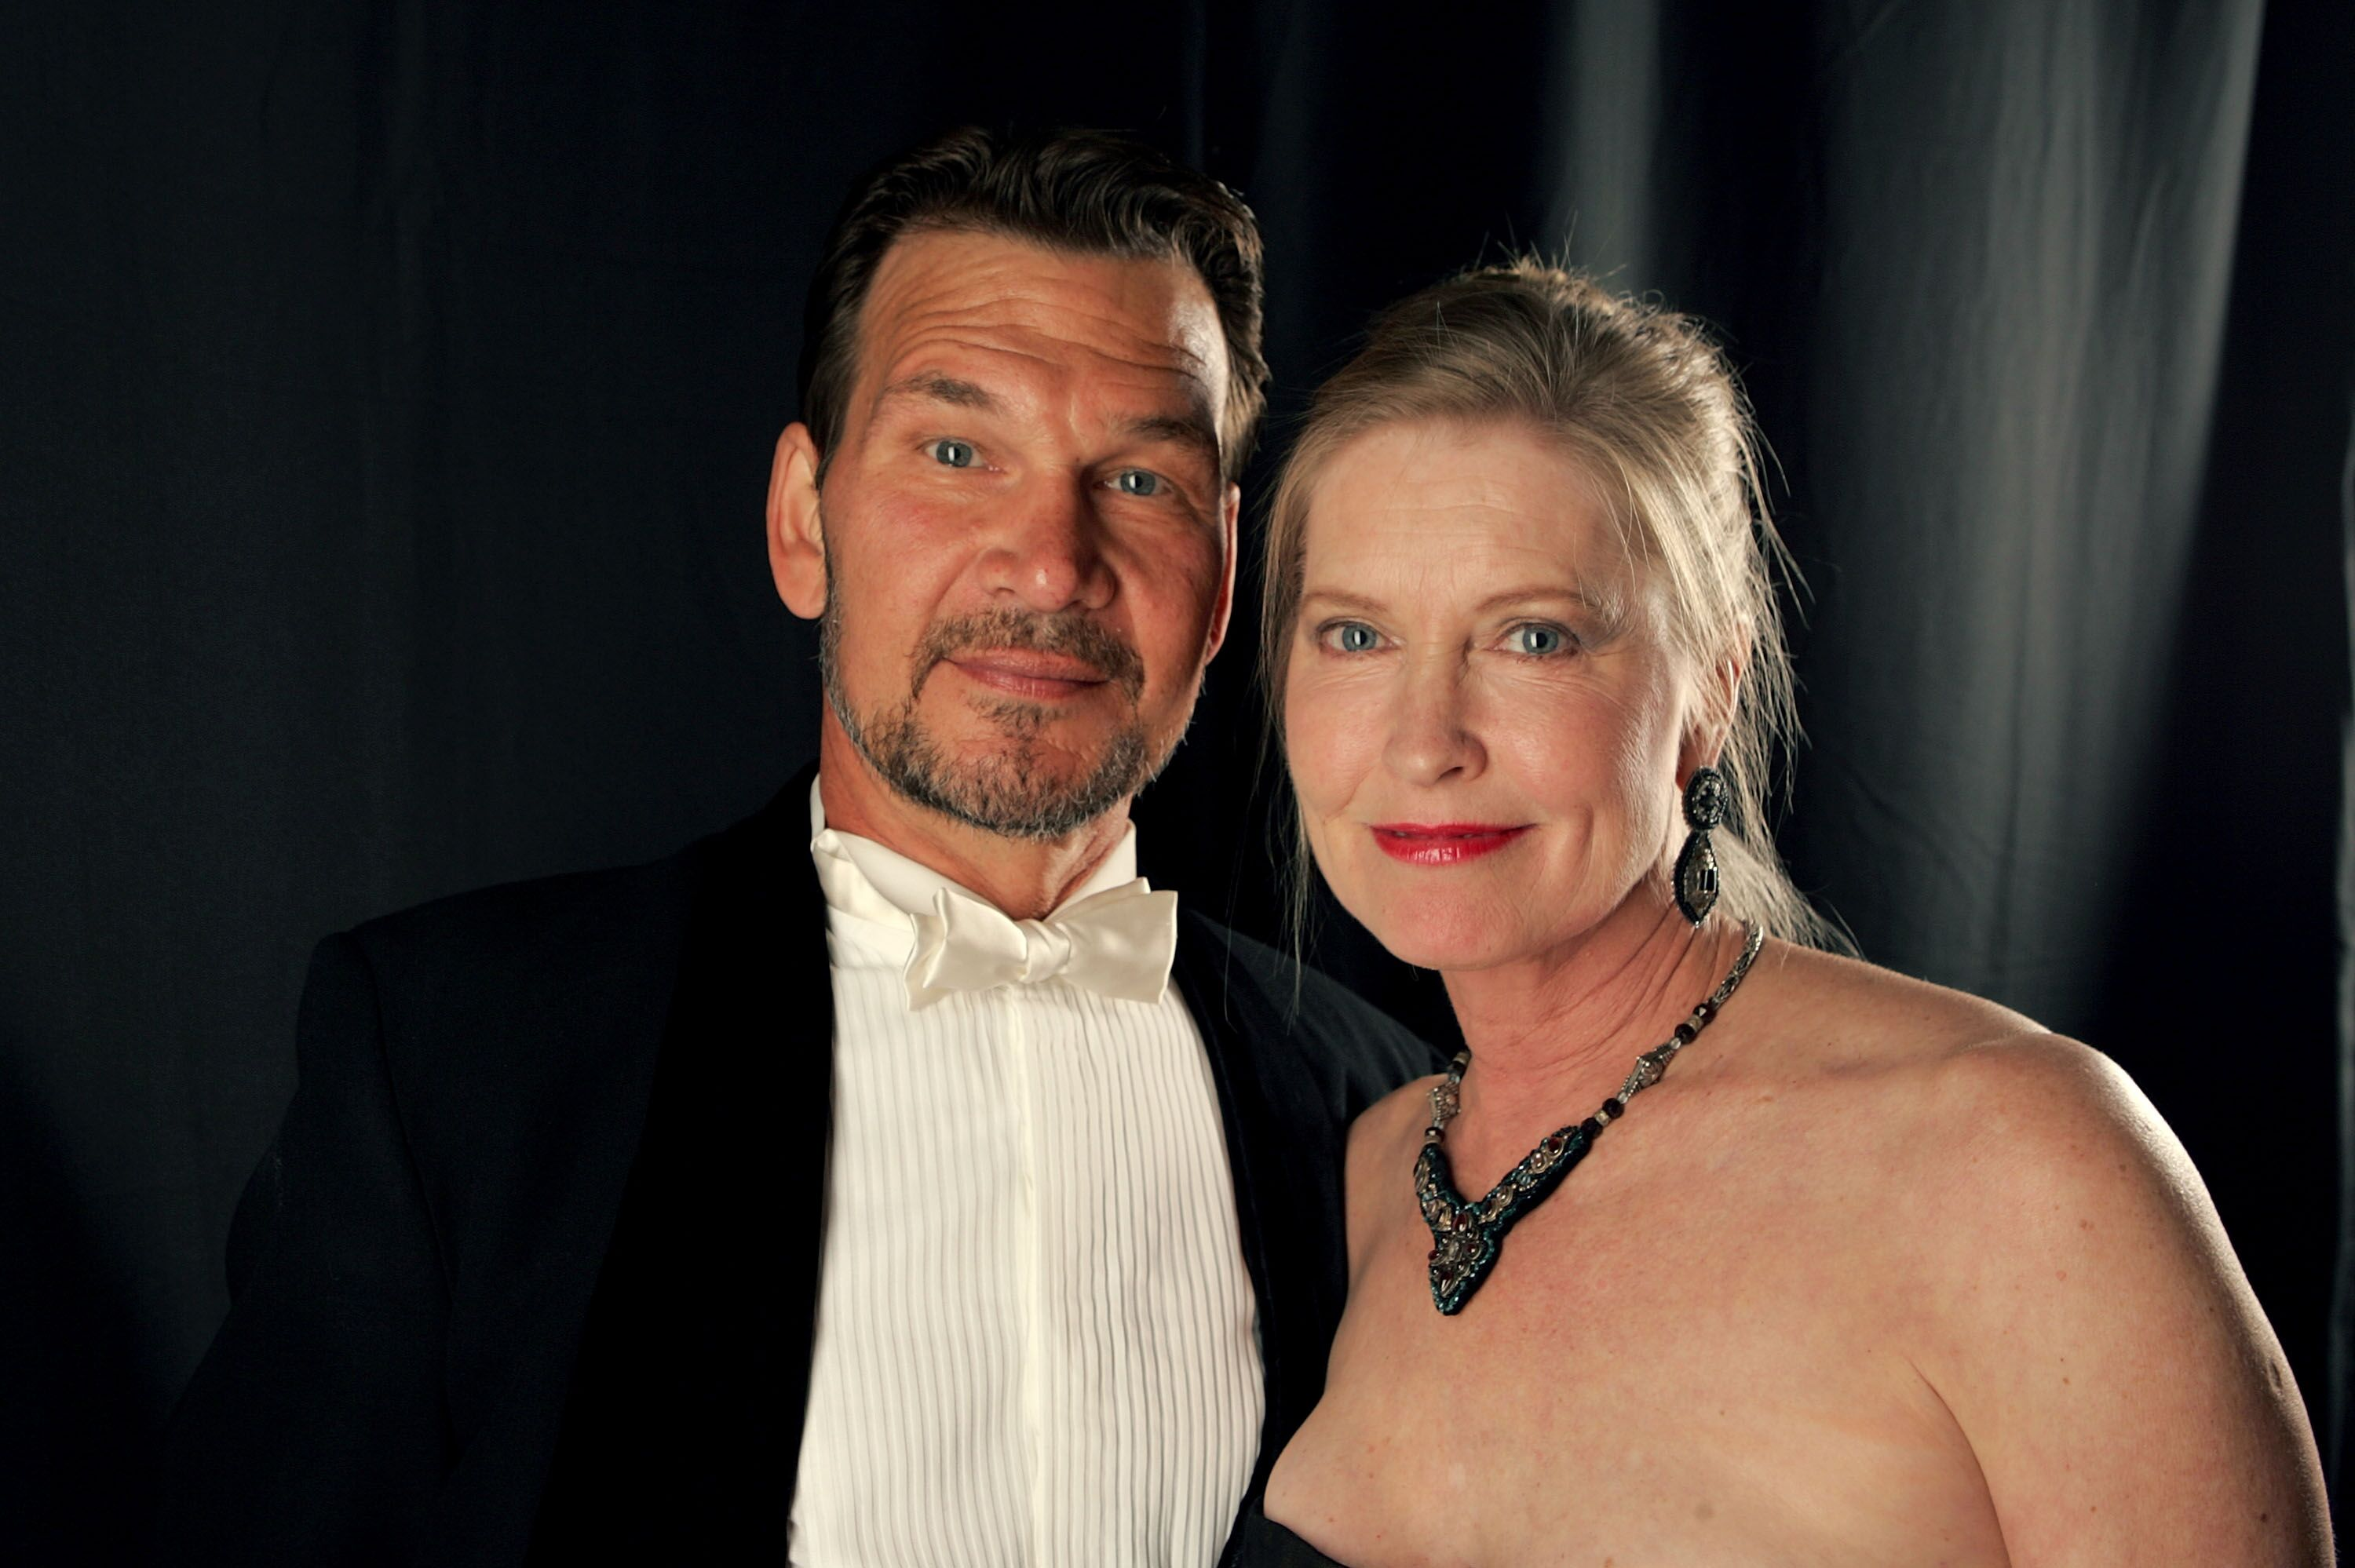 Patrick Swayze and Lisa Niemi at the 9th annual Costume Designers Guild Awards. | Source: Getty Images